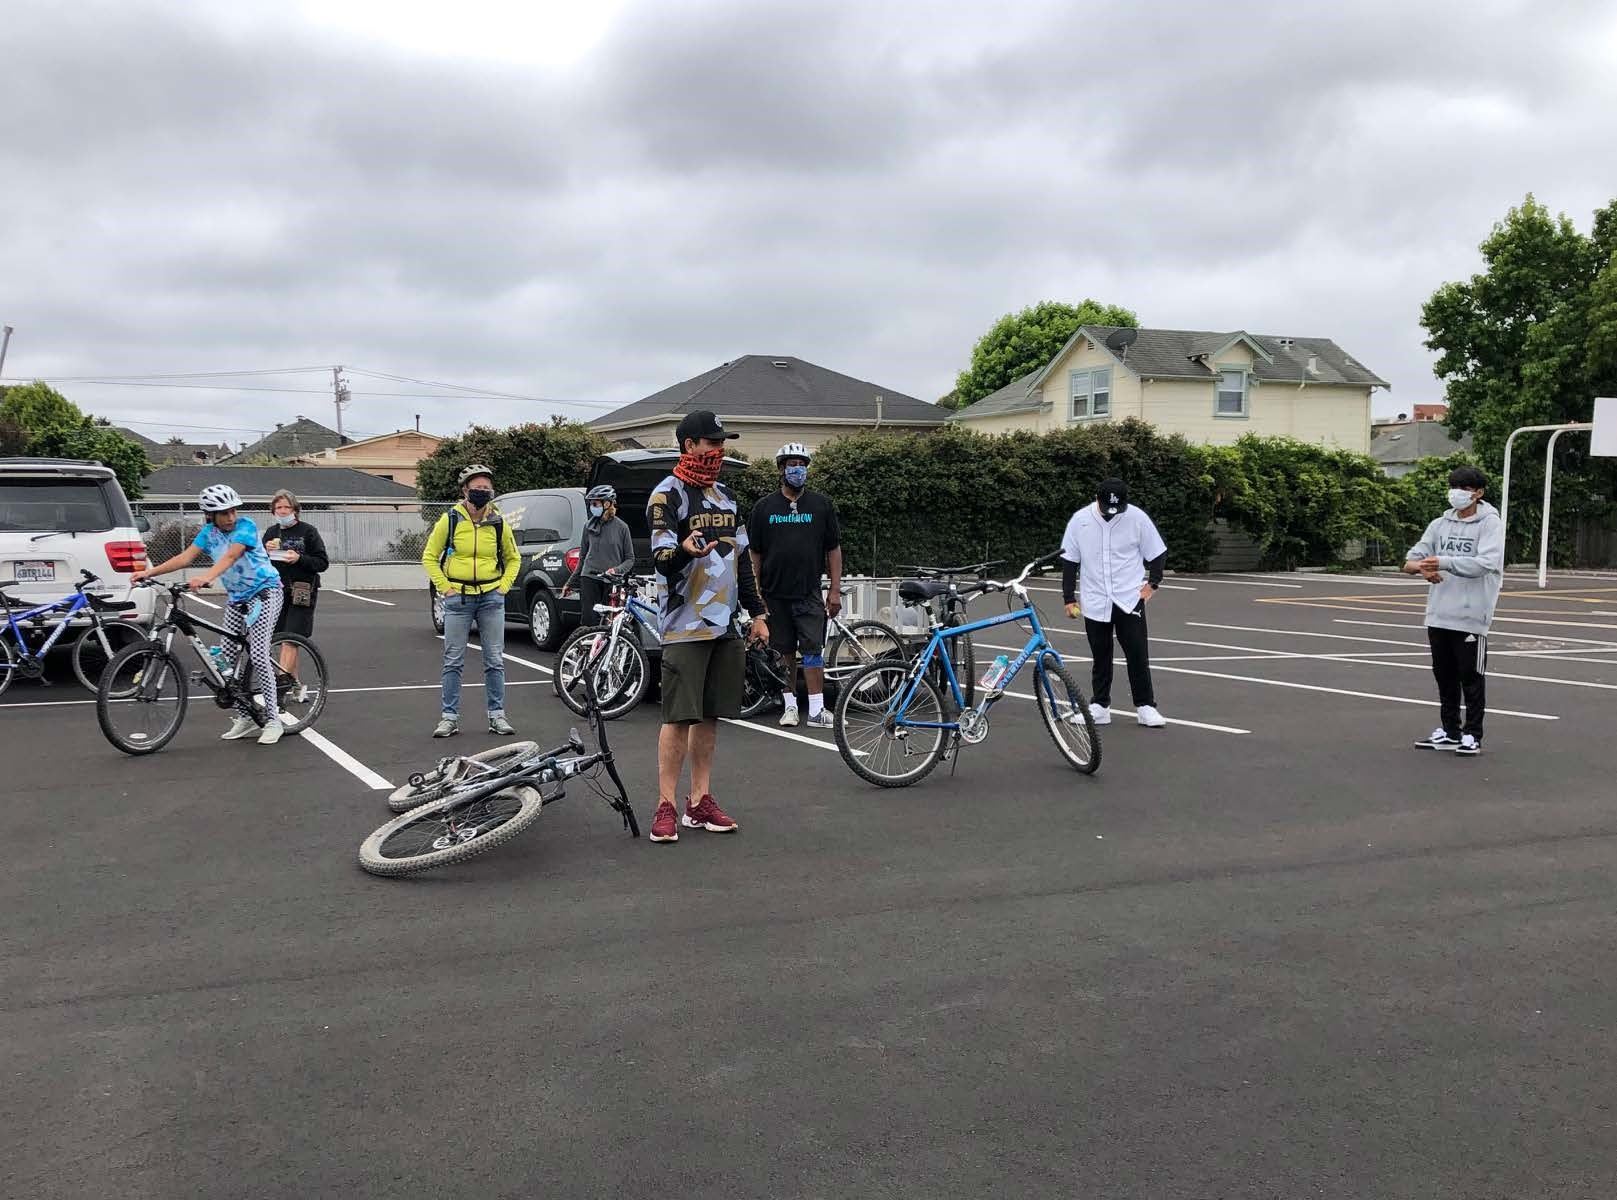 A group of people standing in a parking lot with bicycles during training